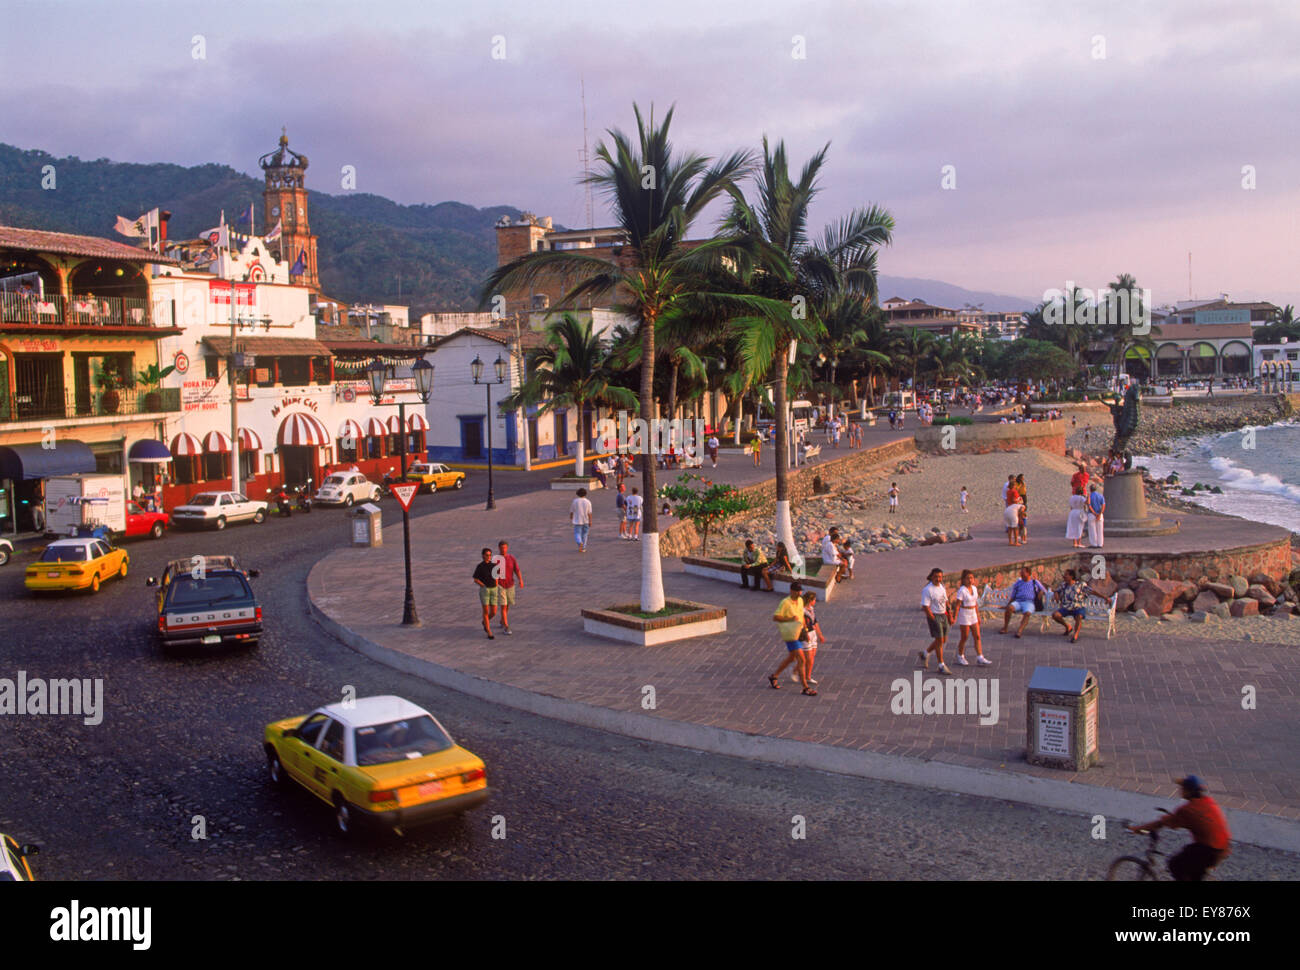 Guadalupe clocher de l'Église et le long du trottoir de la rue de route avant de plage à Puerto Vallarta, Photo Stock